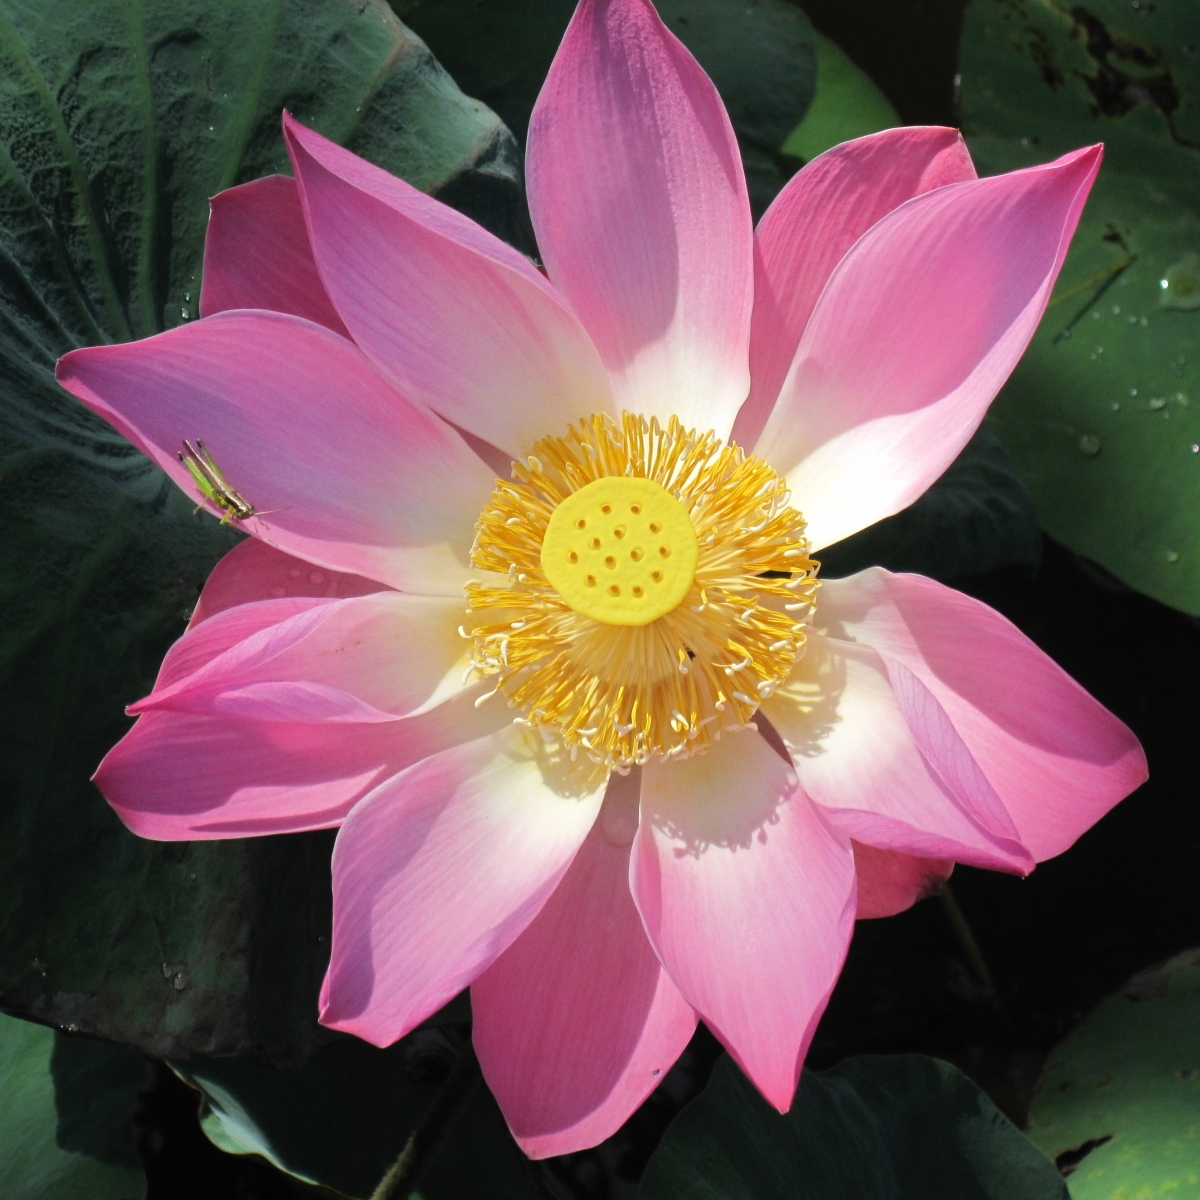 The lotus an exquisite flower and symbol of faith gallivance izmirmasajfo